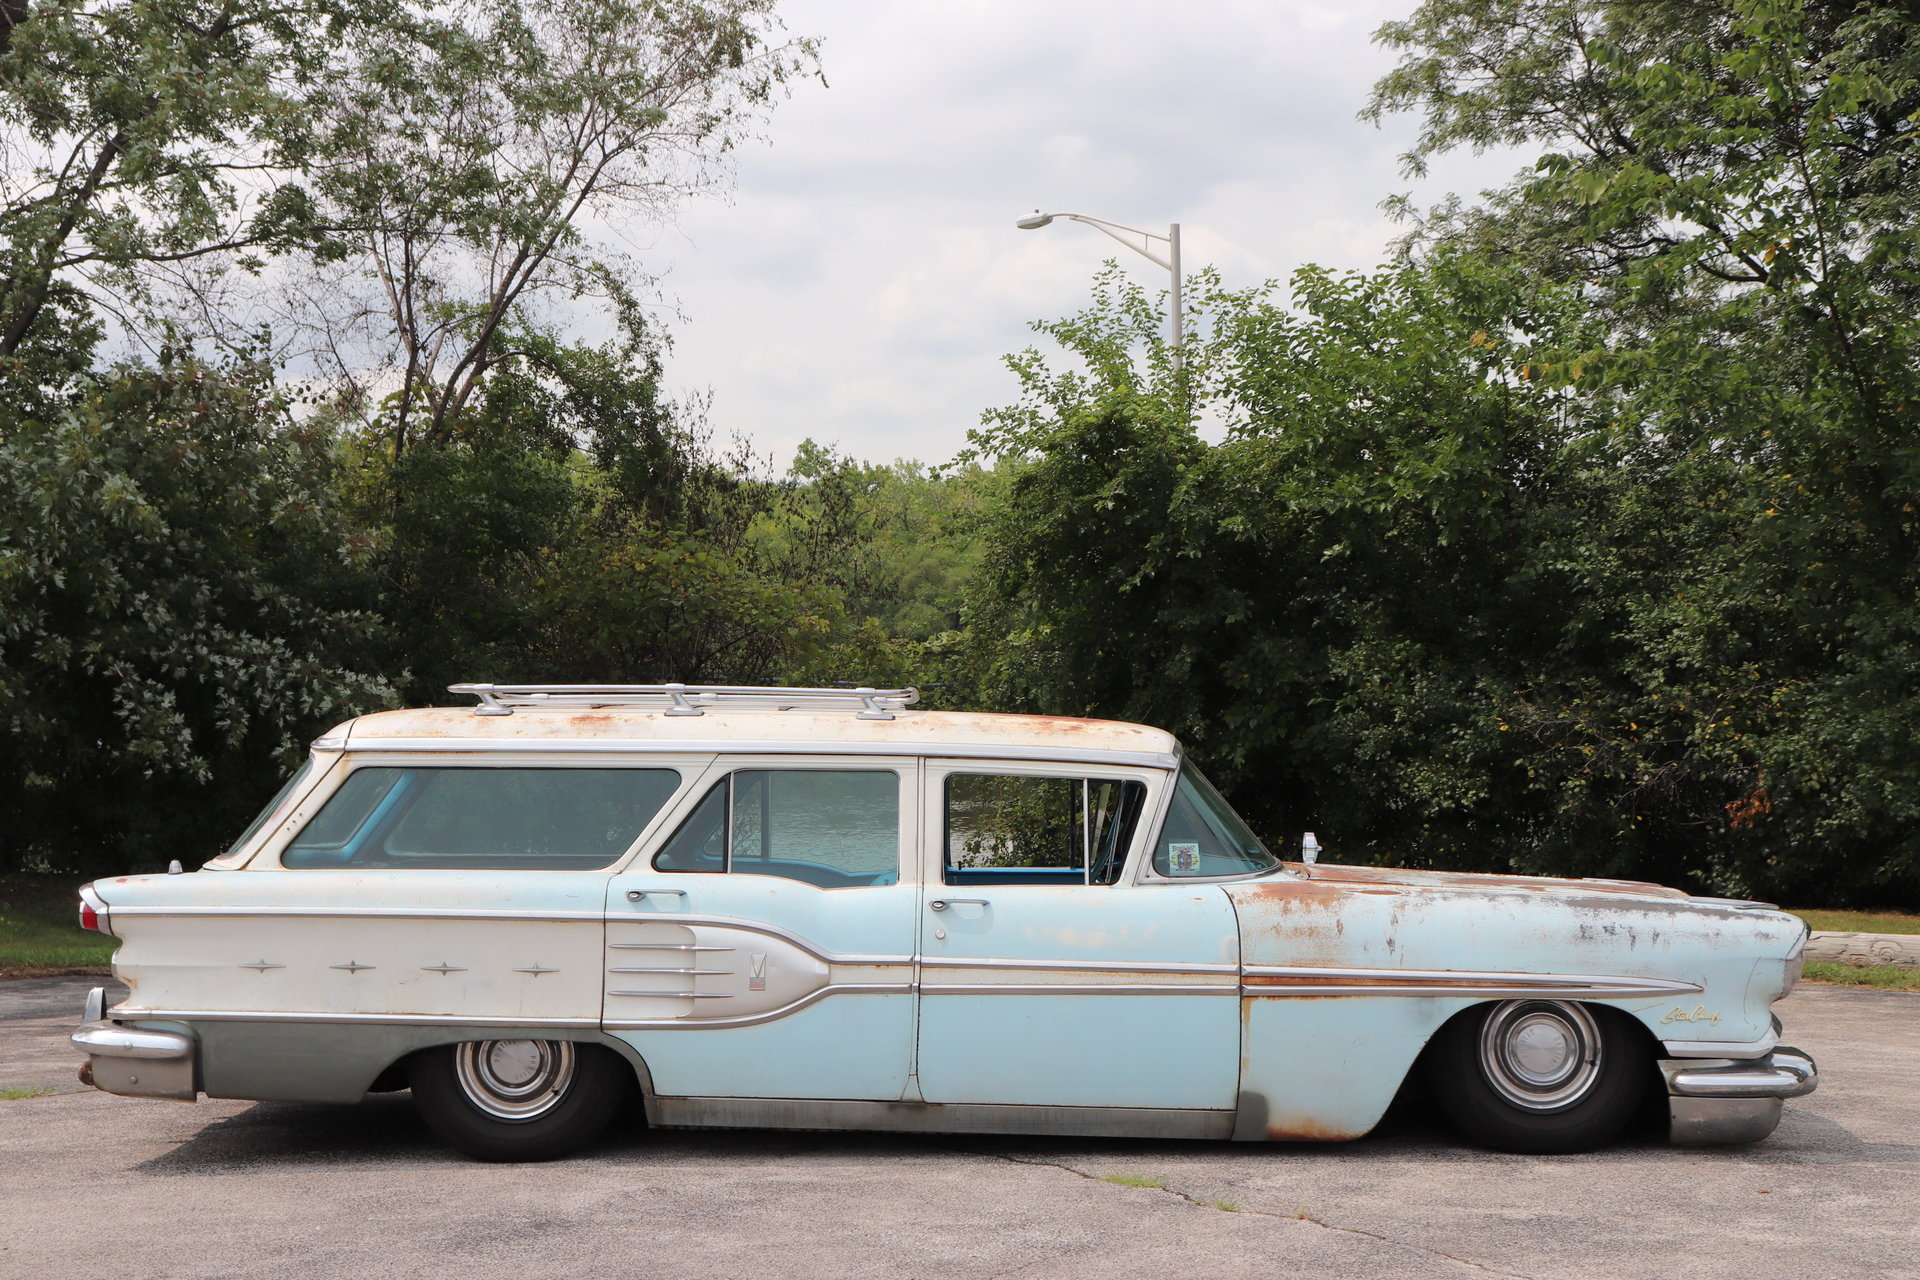 1958 Pontiac Star Chief Custom Safari Station Wagon For Sale 99358 1954